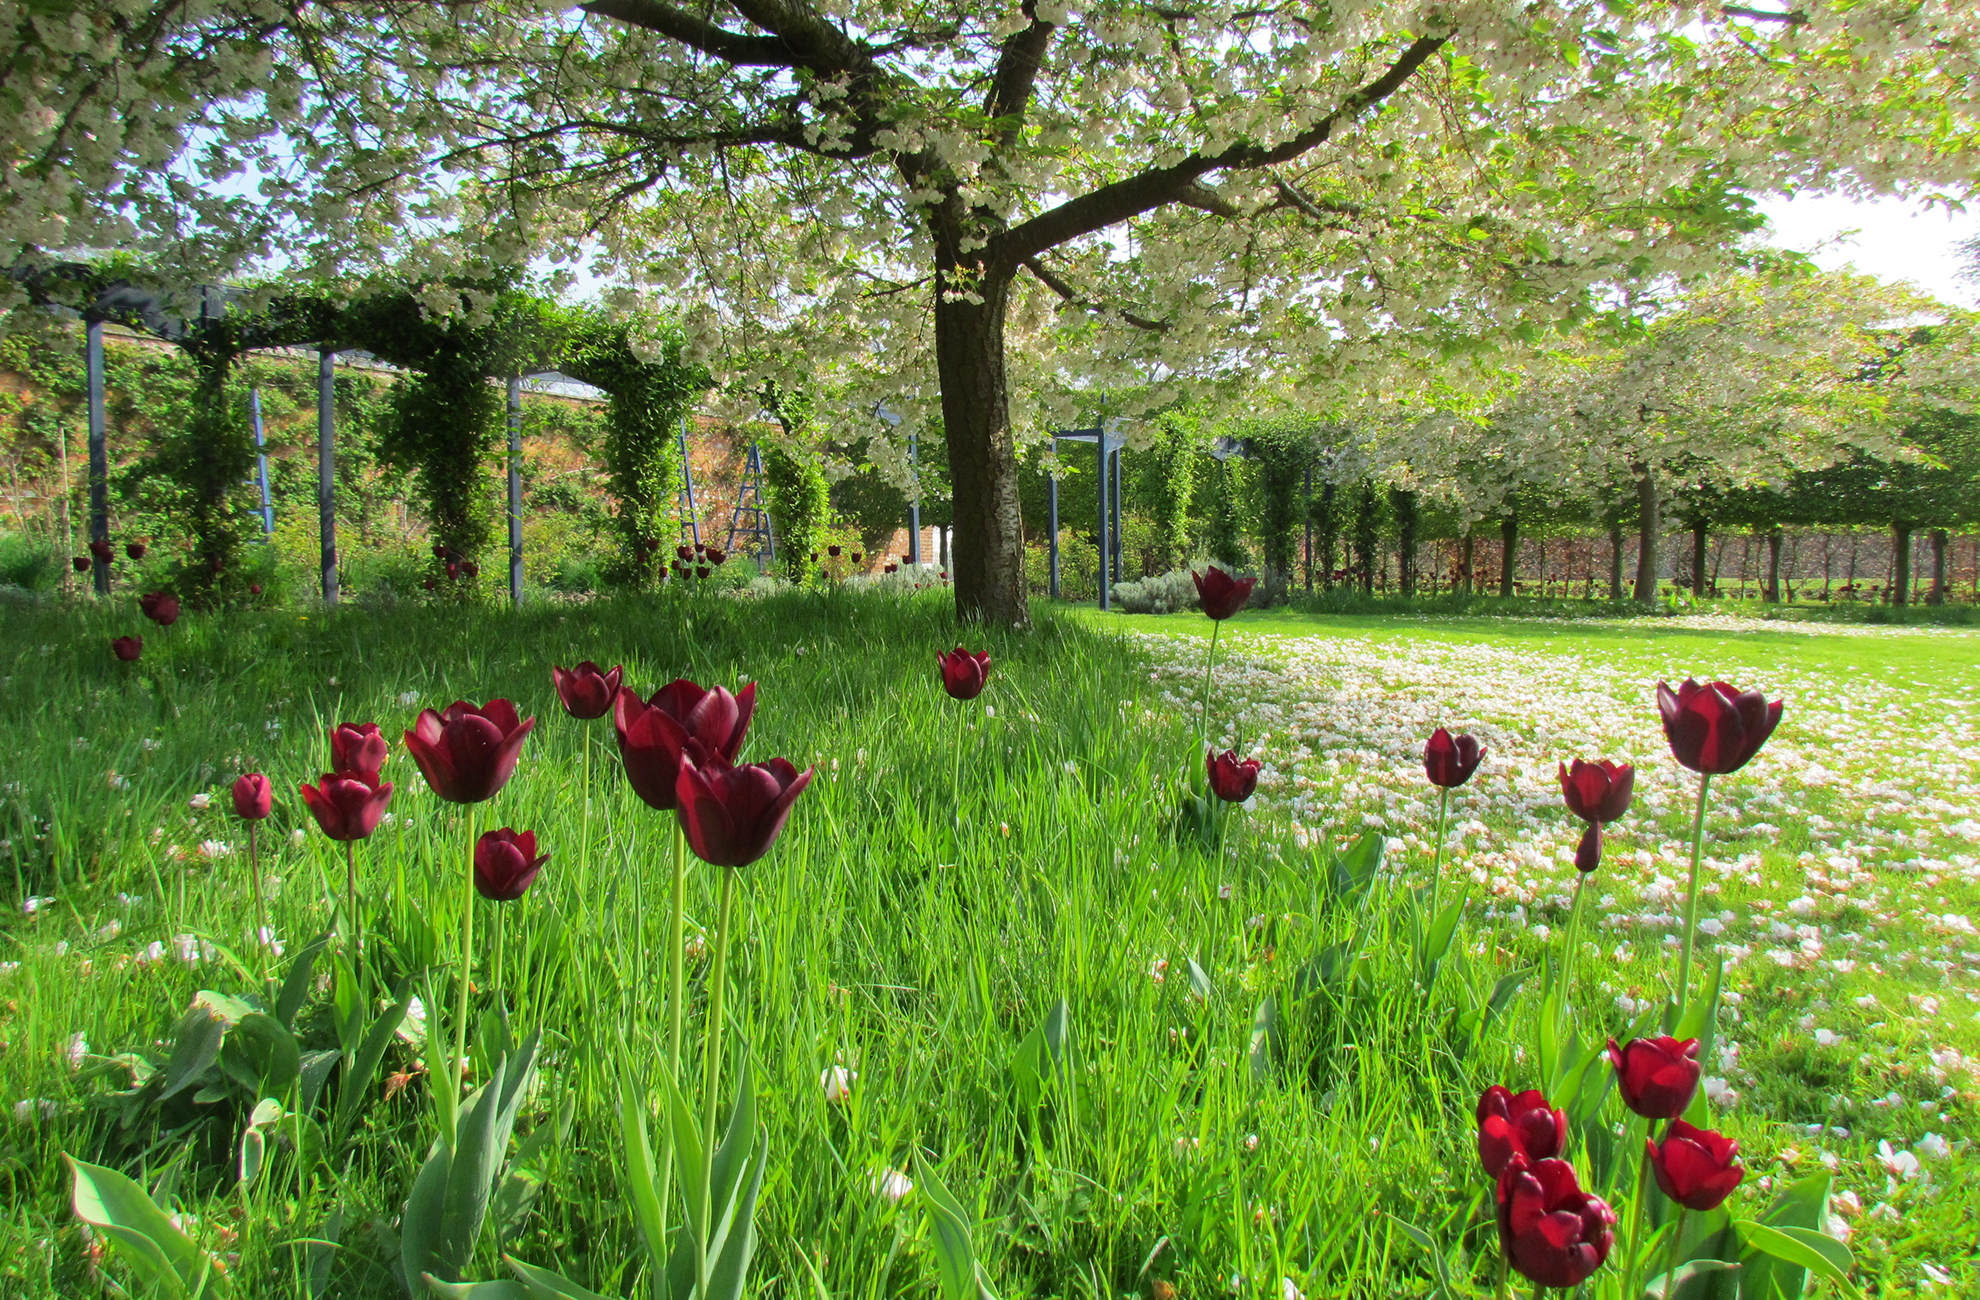 : In the spring cherry blossoms and tulips look beautiful in the gardens at Combermere Abbey